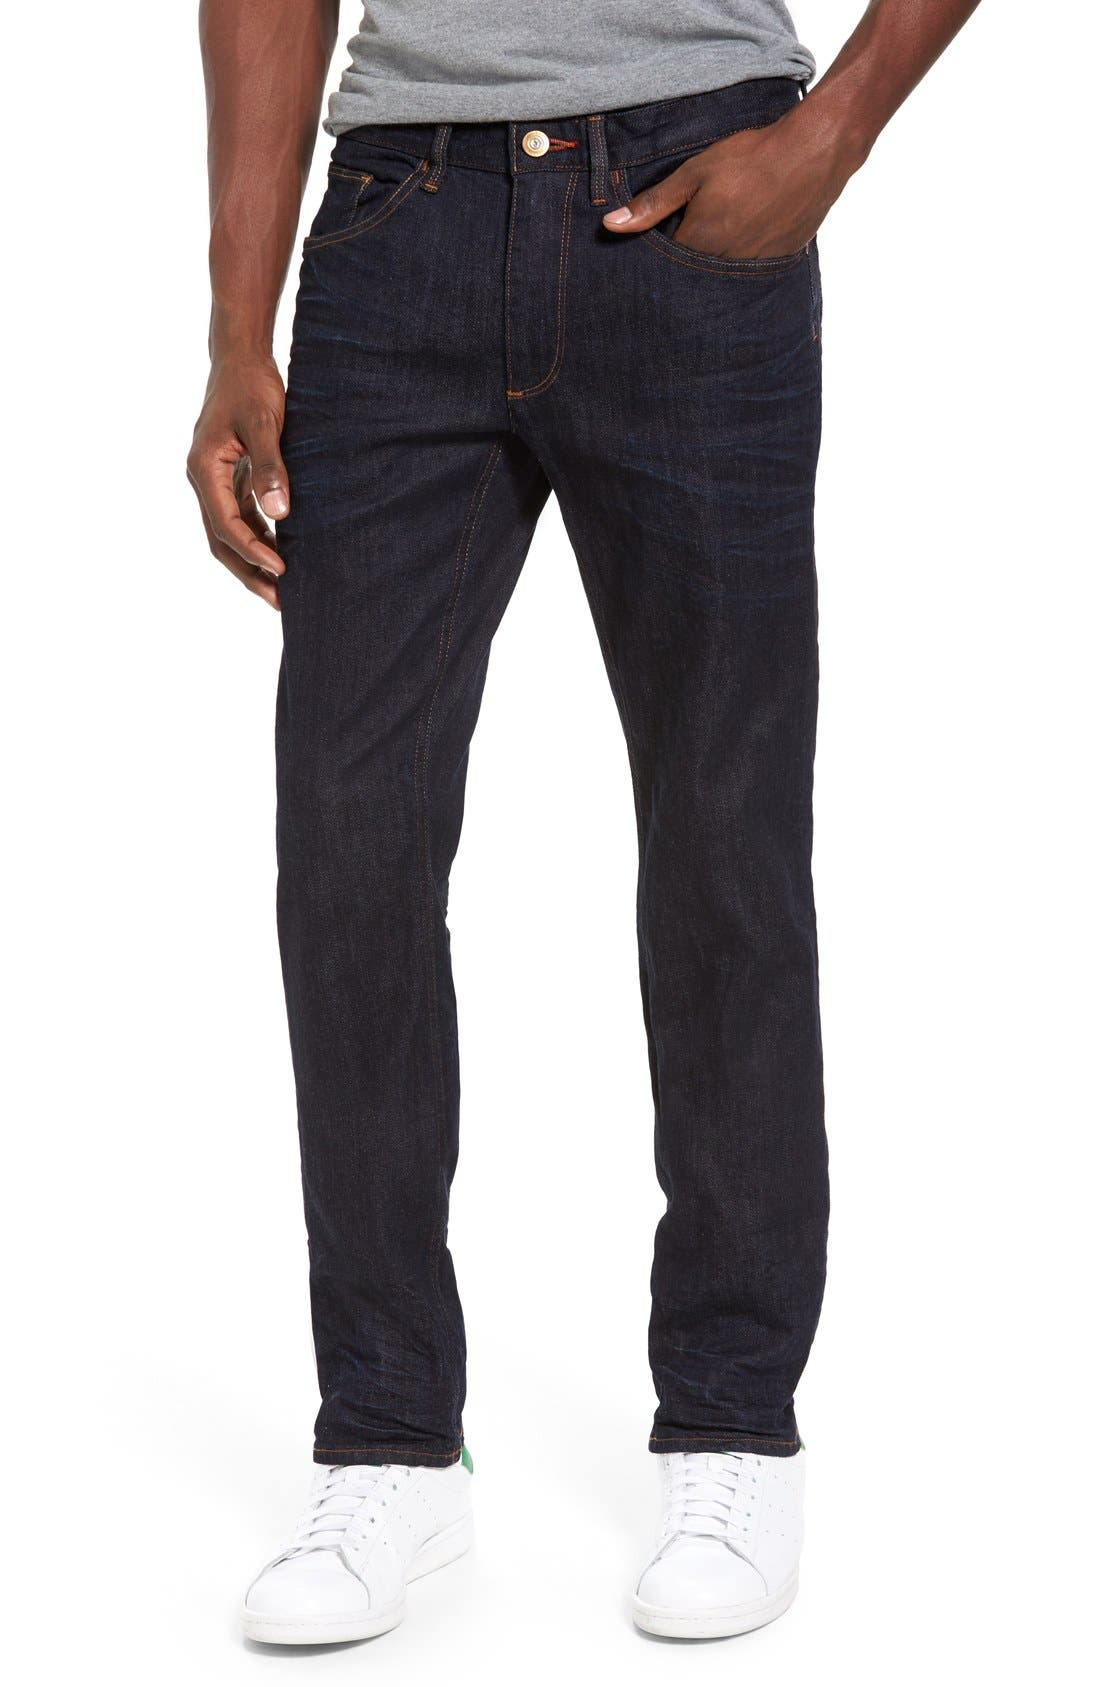 Alternate Image 1 Selected - Psycho Bunny Canal Slim Fit Jeans